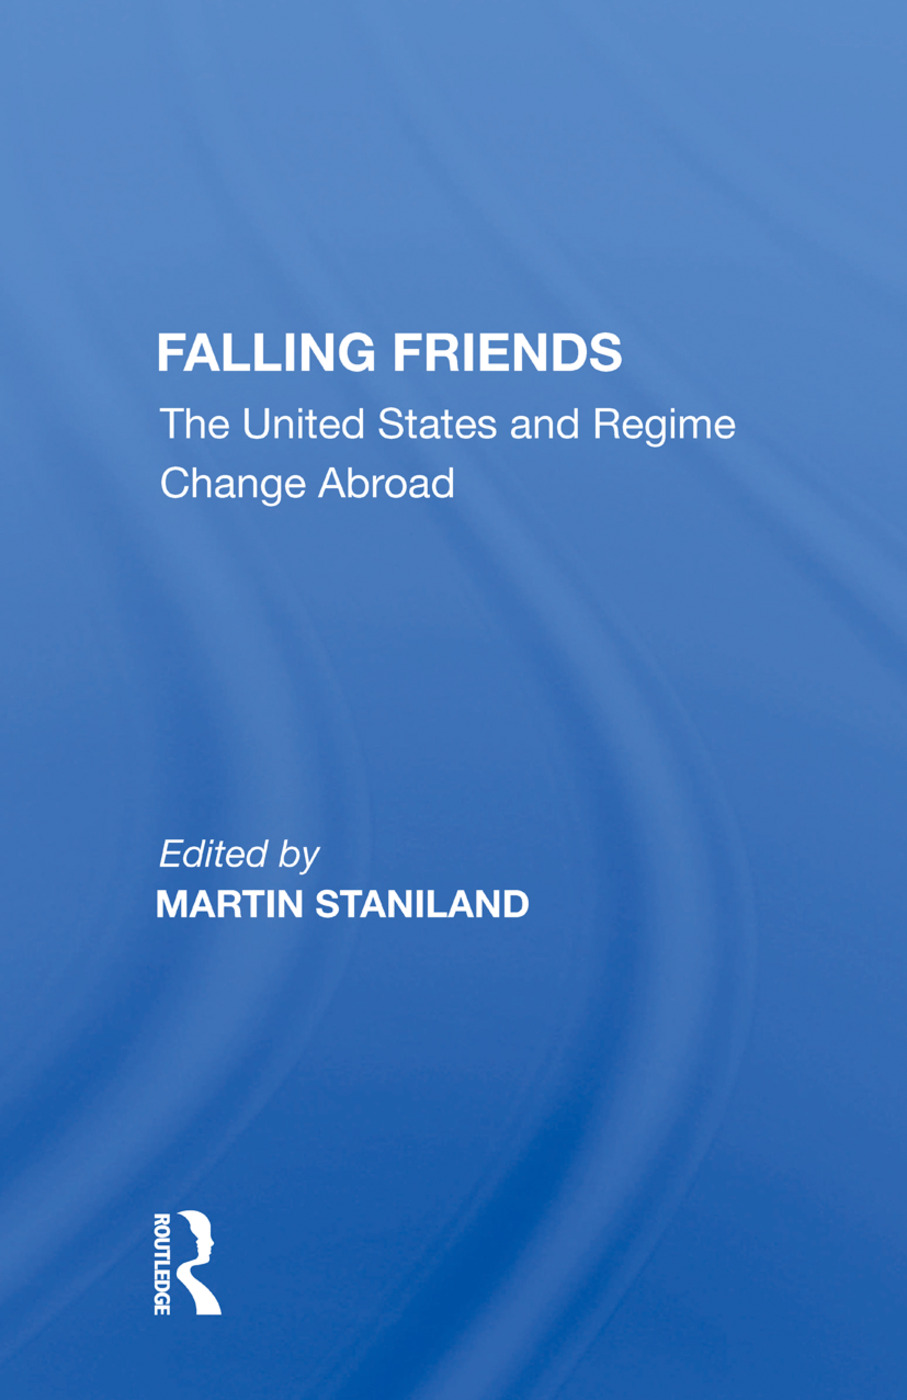 Falling Friends: The United States and Regime Change Abroad book cover